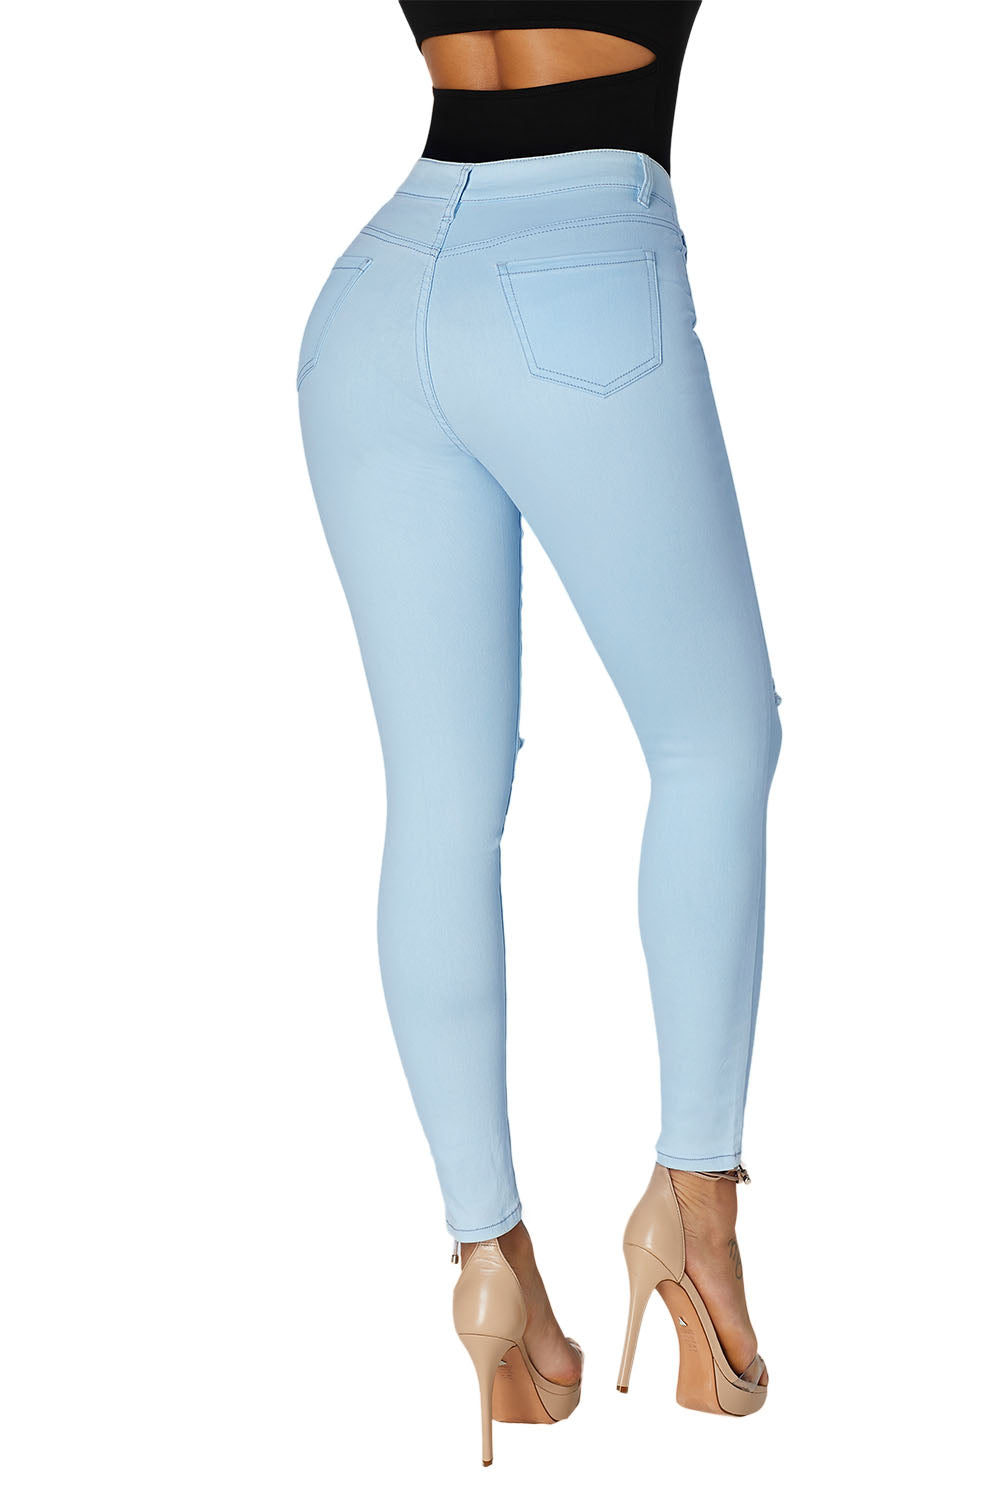 Light Blue Trendy Slit Knee Denim Pants